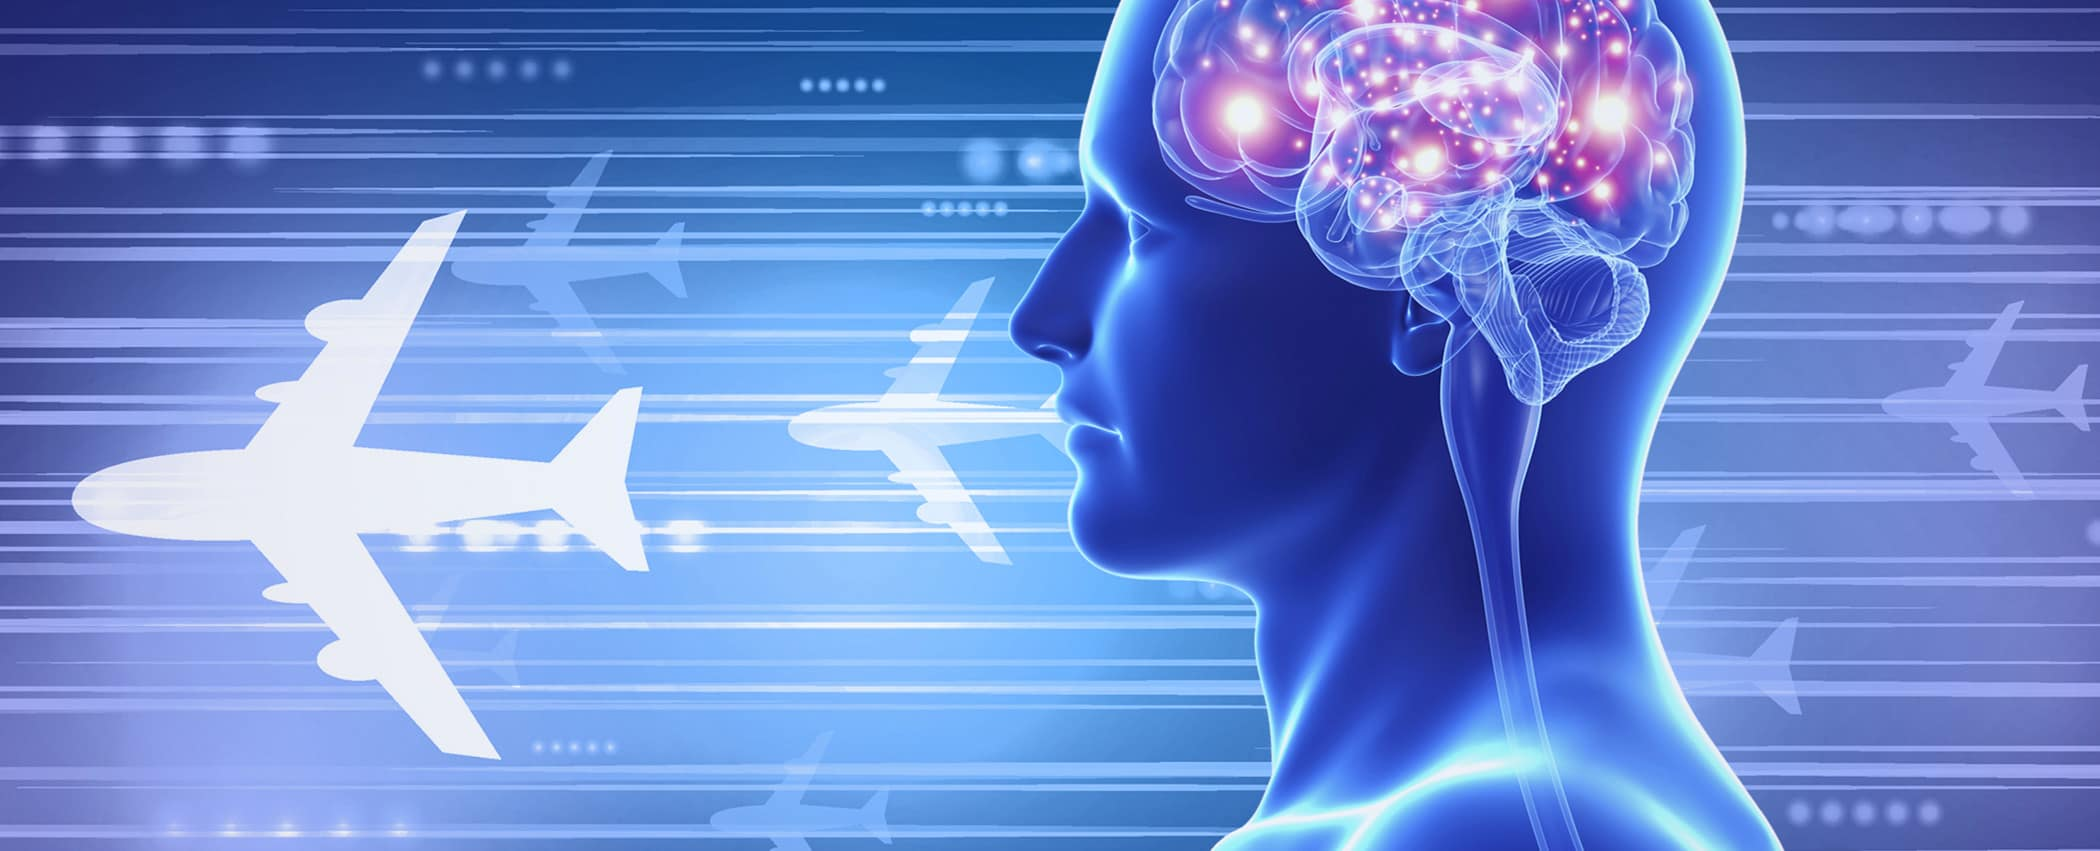 Conceptual graphic with human mind focused on aviation